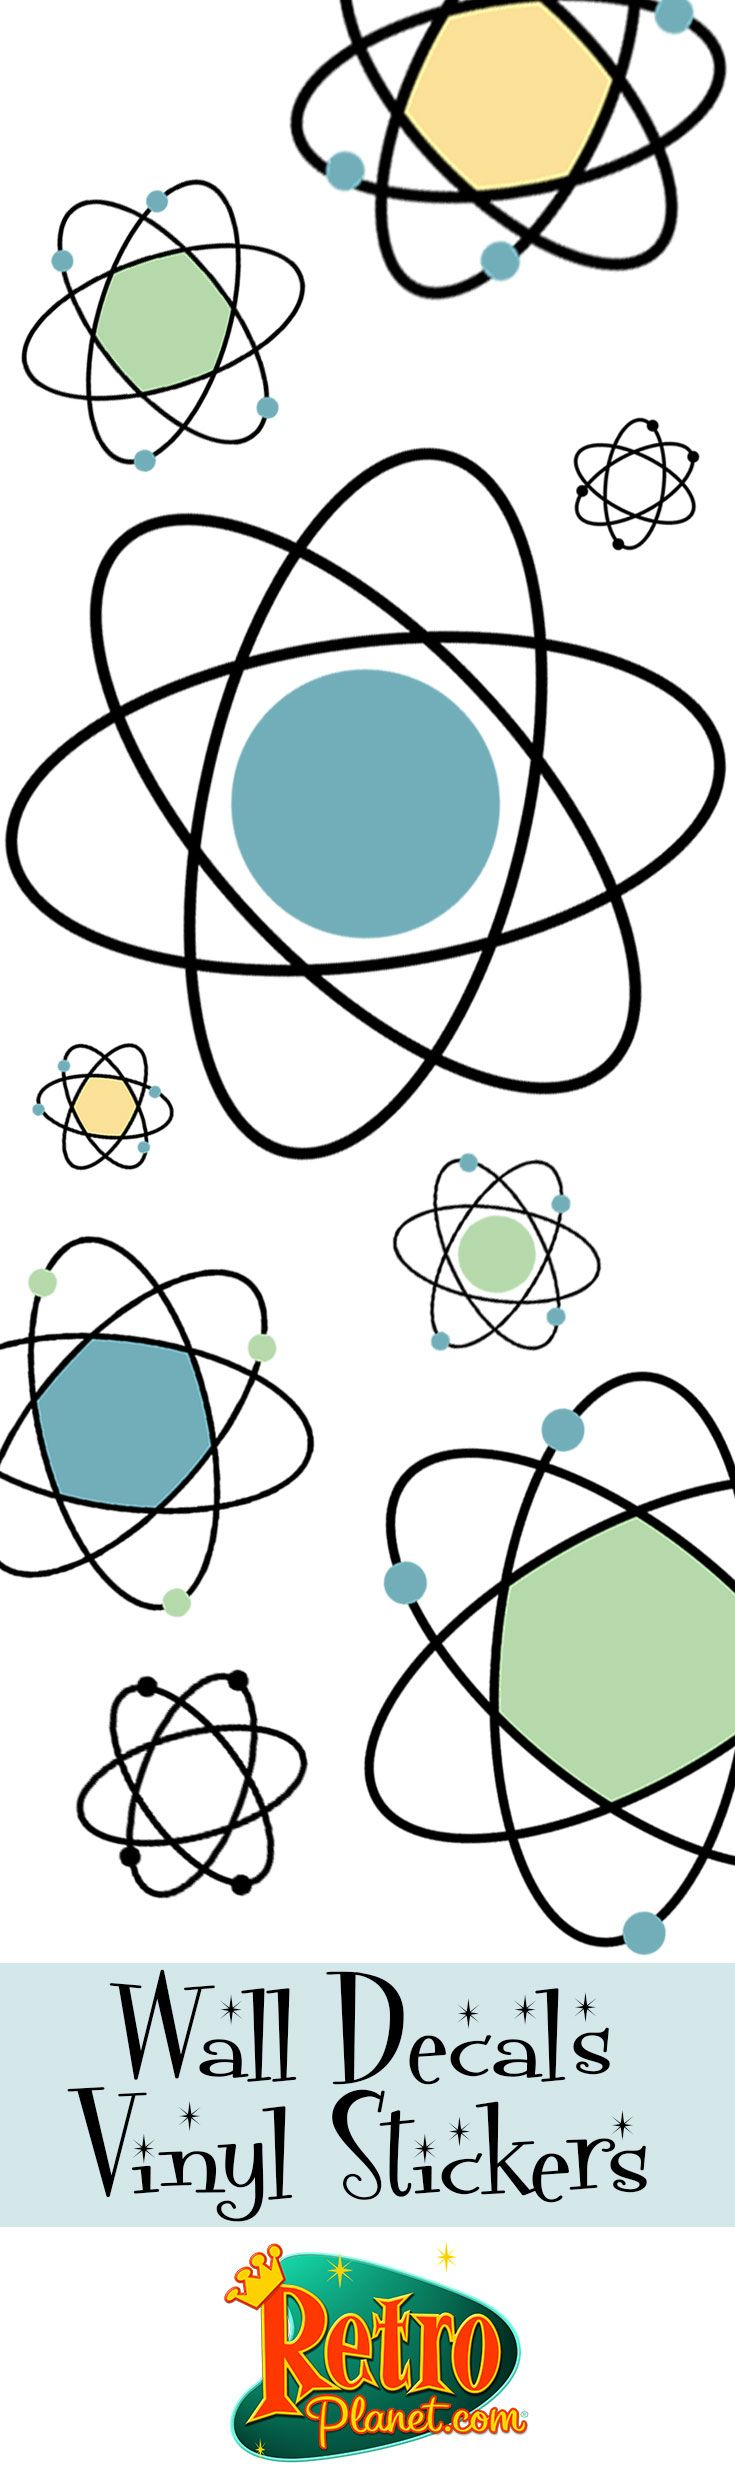 Atomic Symbols Wall Decals